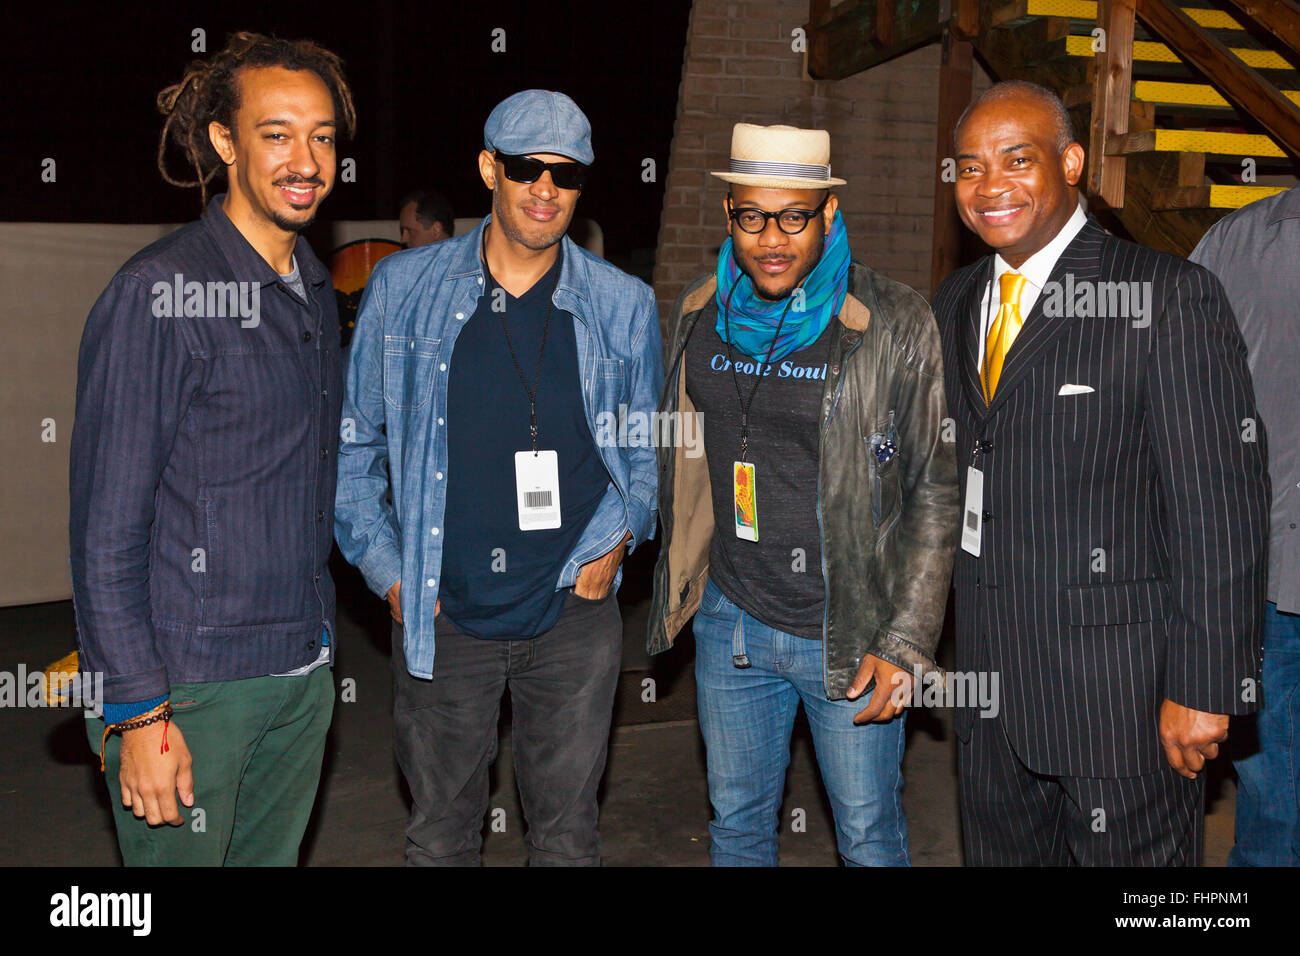 Musicians backstage at the Monterey Jazz Festival - California - Stock Image